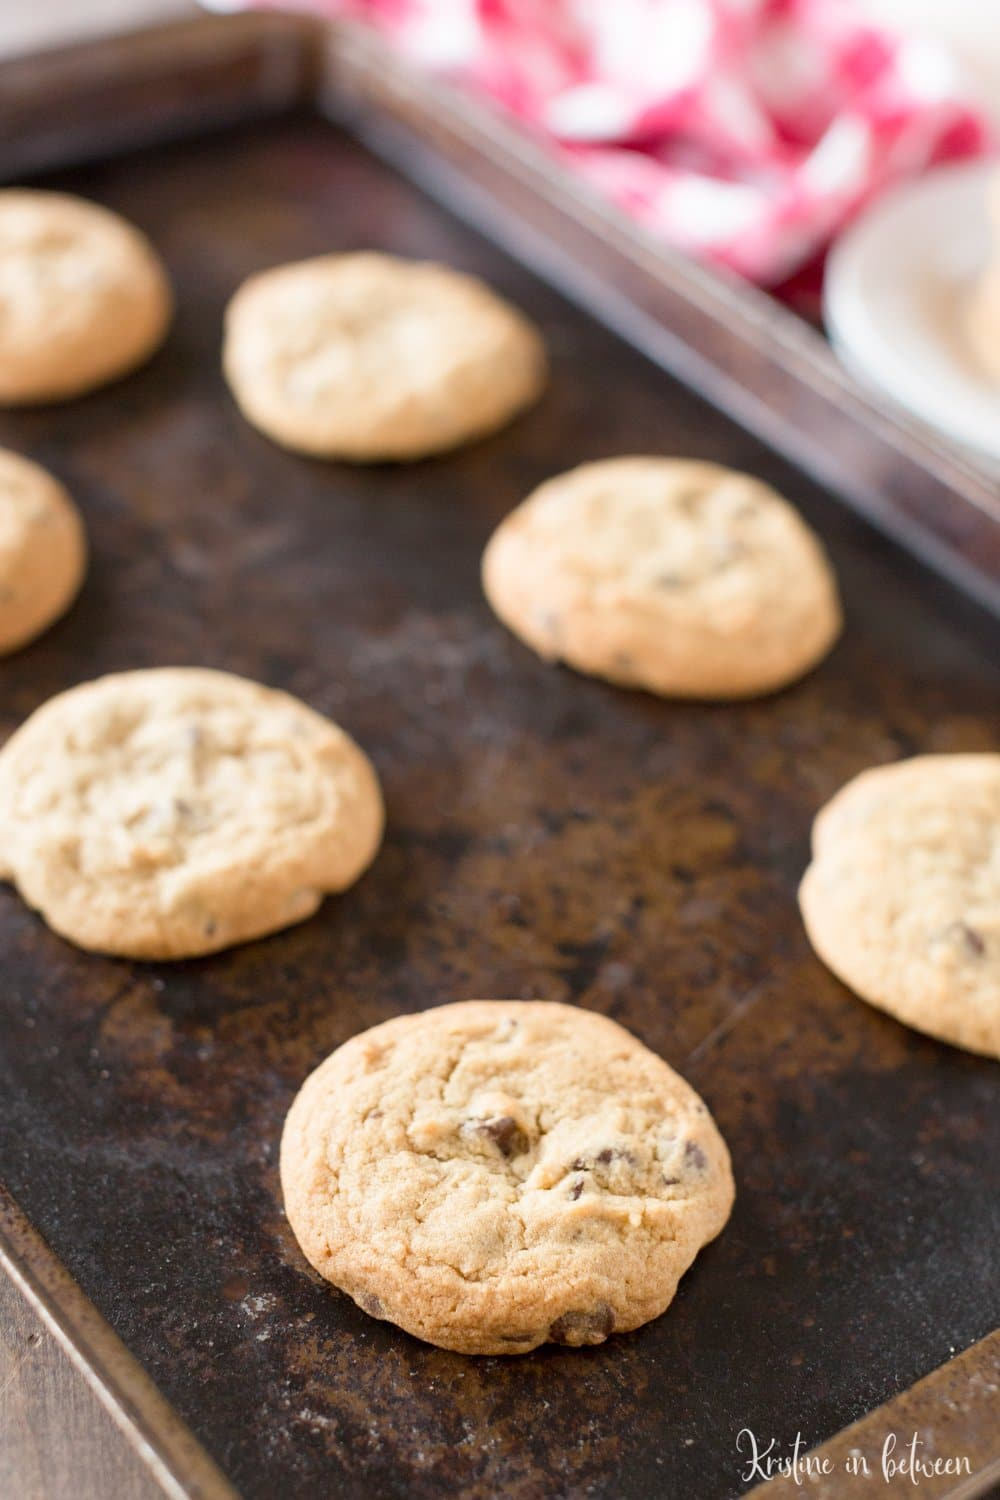 Giant chocolate chip cookies that are soft and chewy and loaded with chocolate chips!